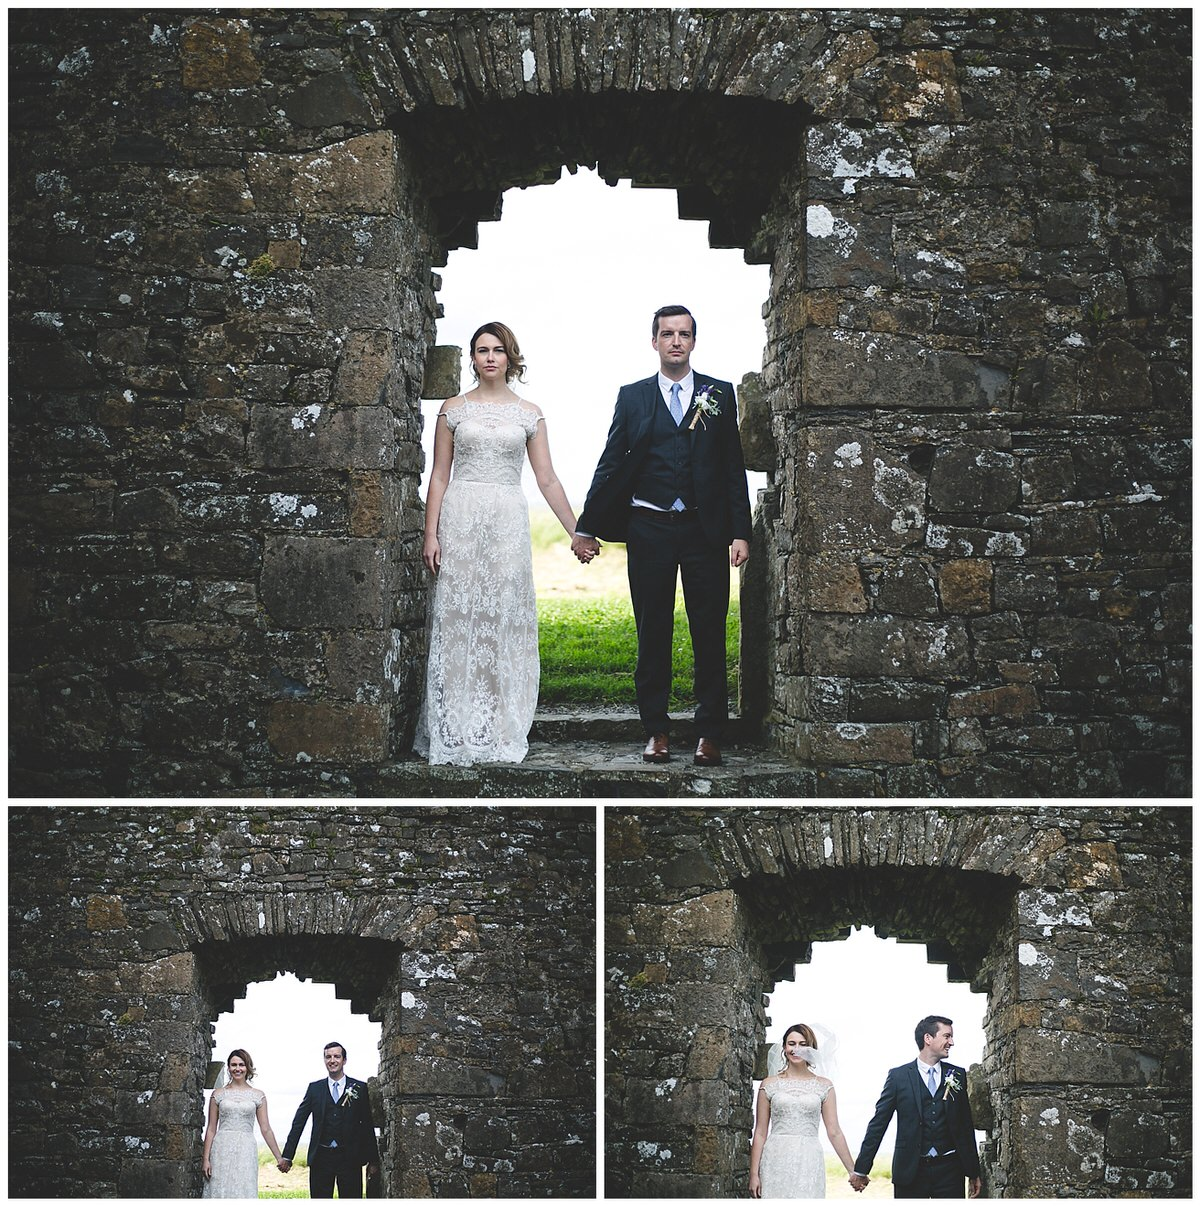 Cool wedding portraits in a old crumbling castle ruin in Meath, Ireland